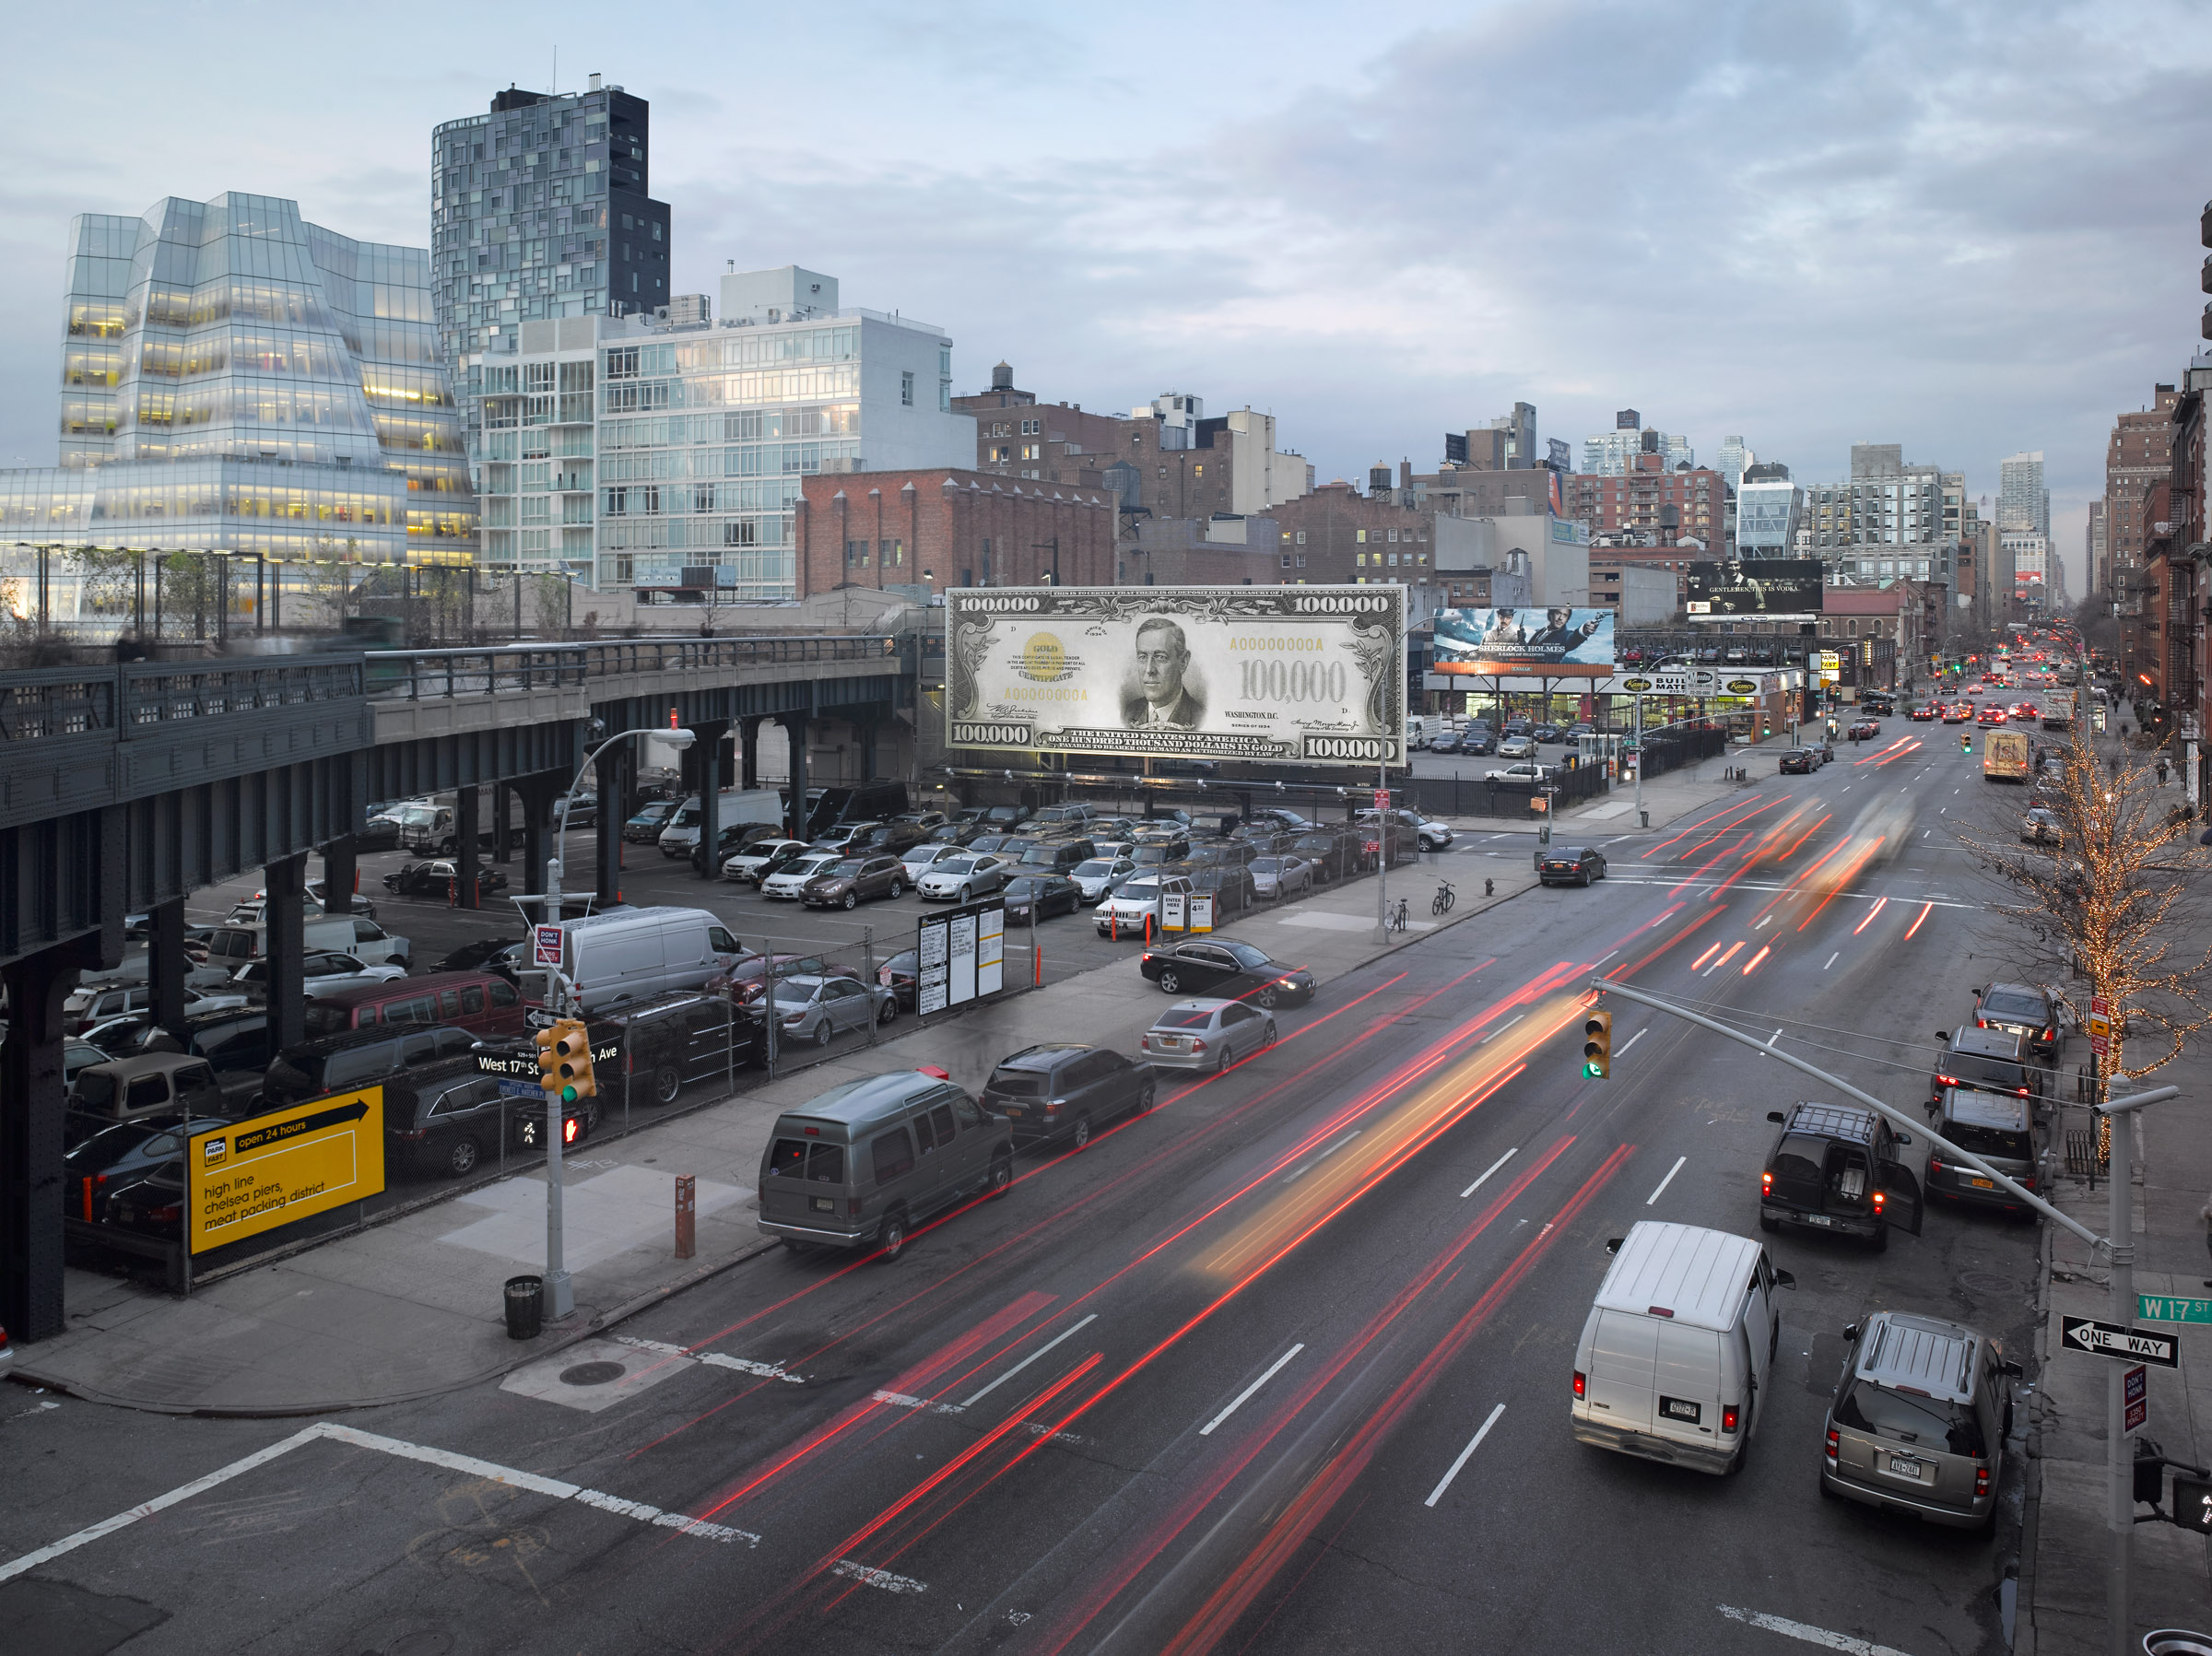 High Line - courtesy John Baldessari & Marian Goodman Gallery & Friends of the High Line - photo Austin Kennedy